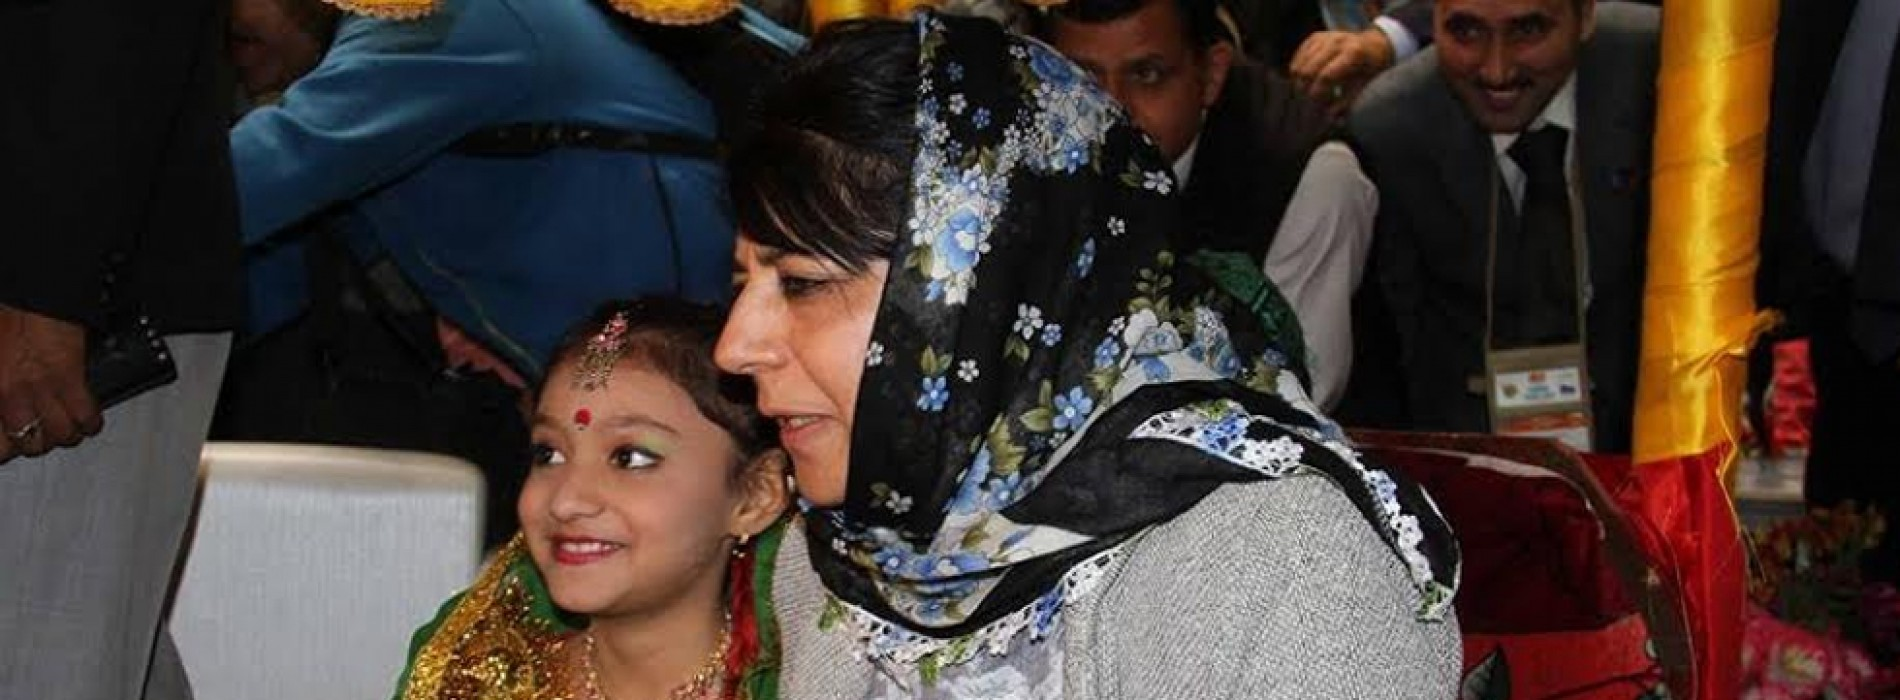 Jammu & Kashmir Chief Minister Mehbooba Mufti addresses ITM at Jammu